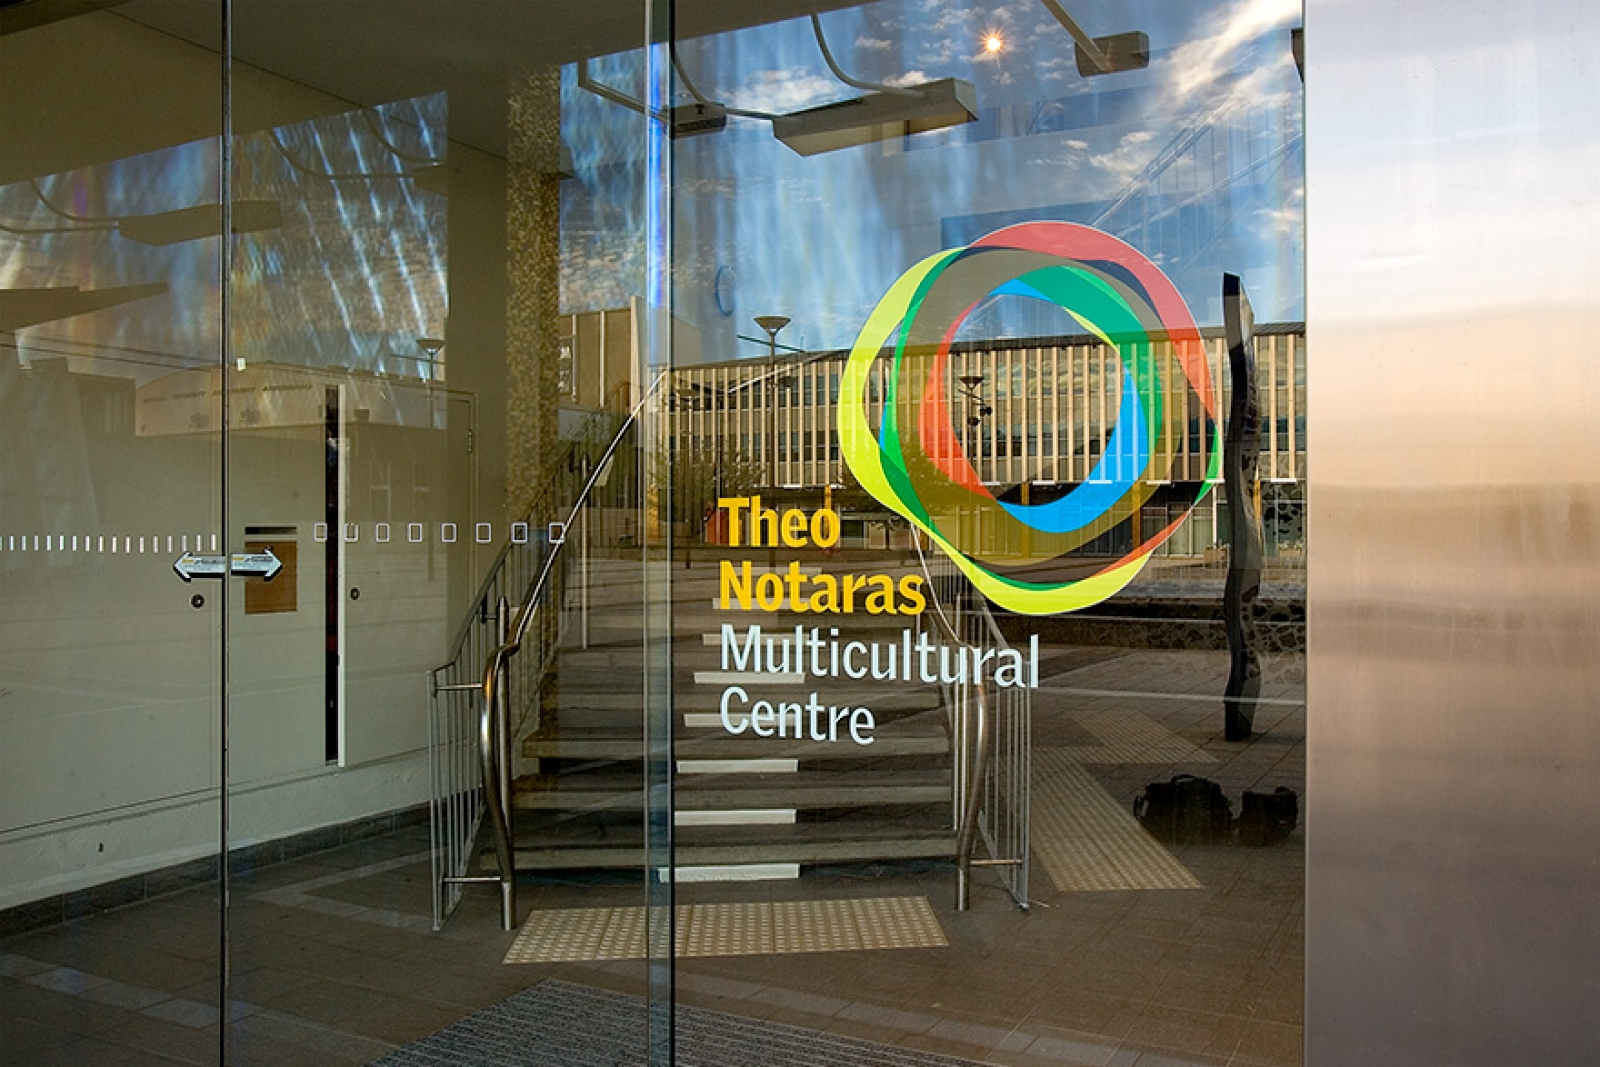 Theo Notaras Multicultural Centre